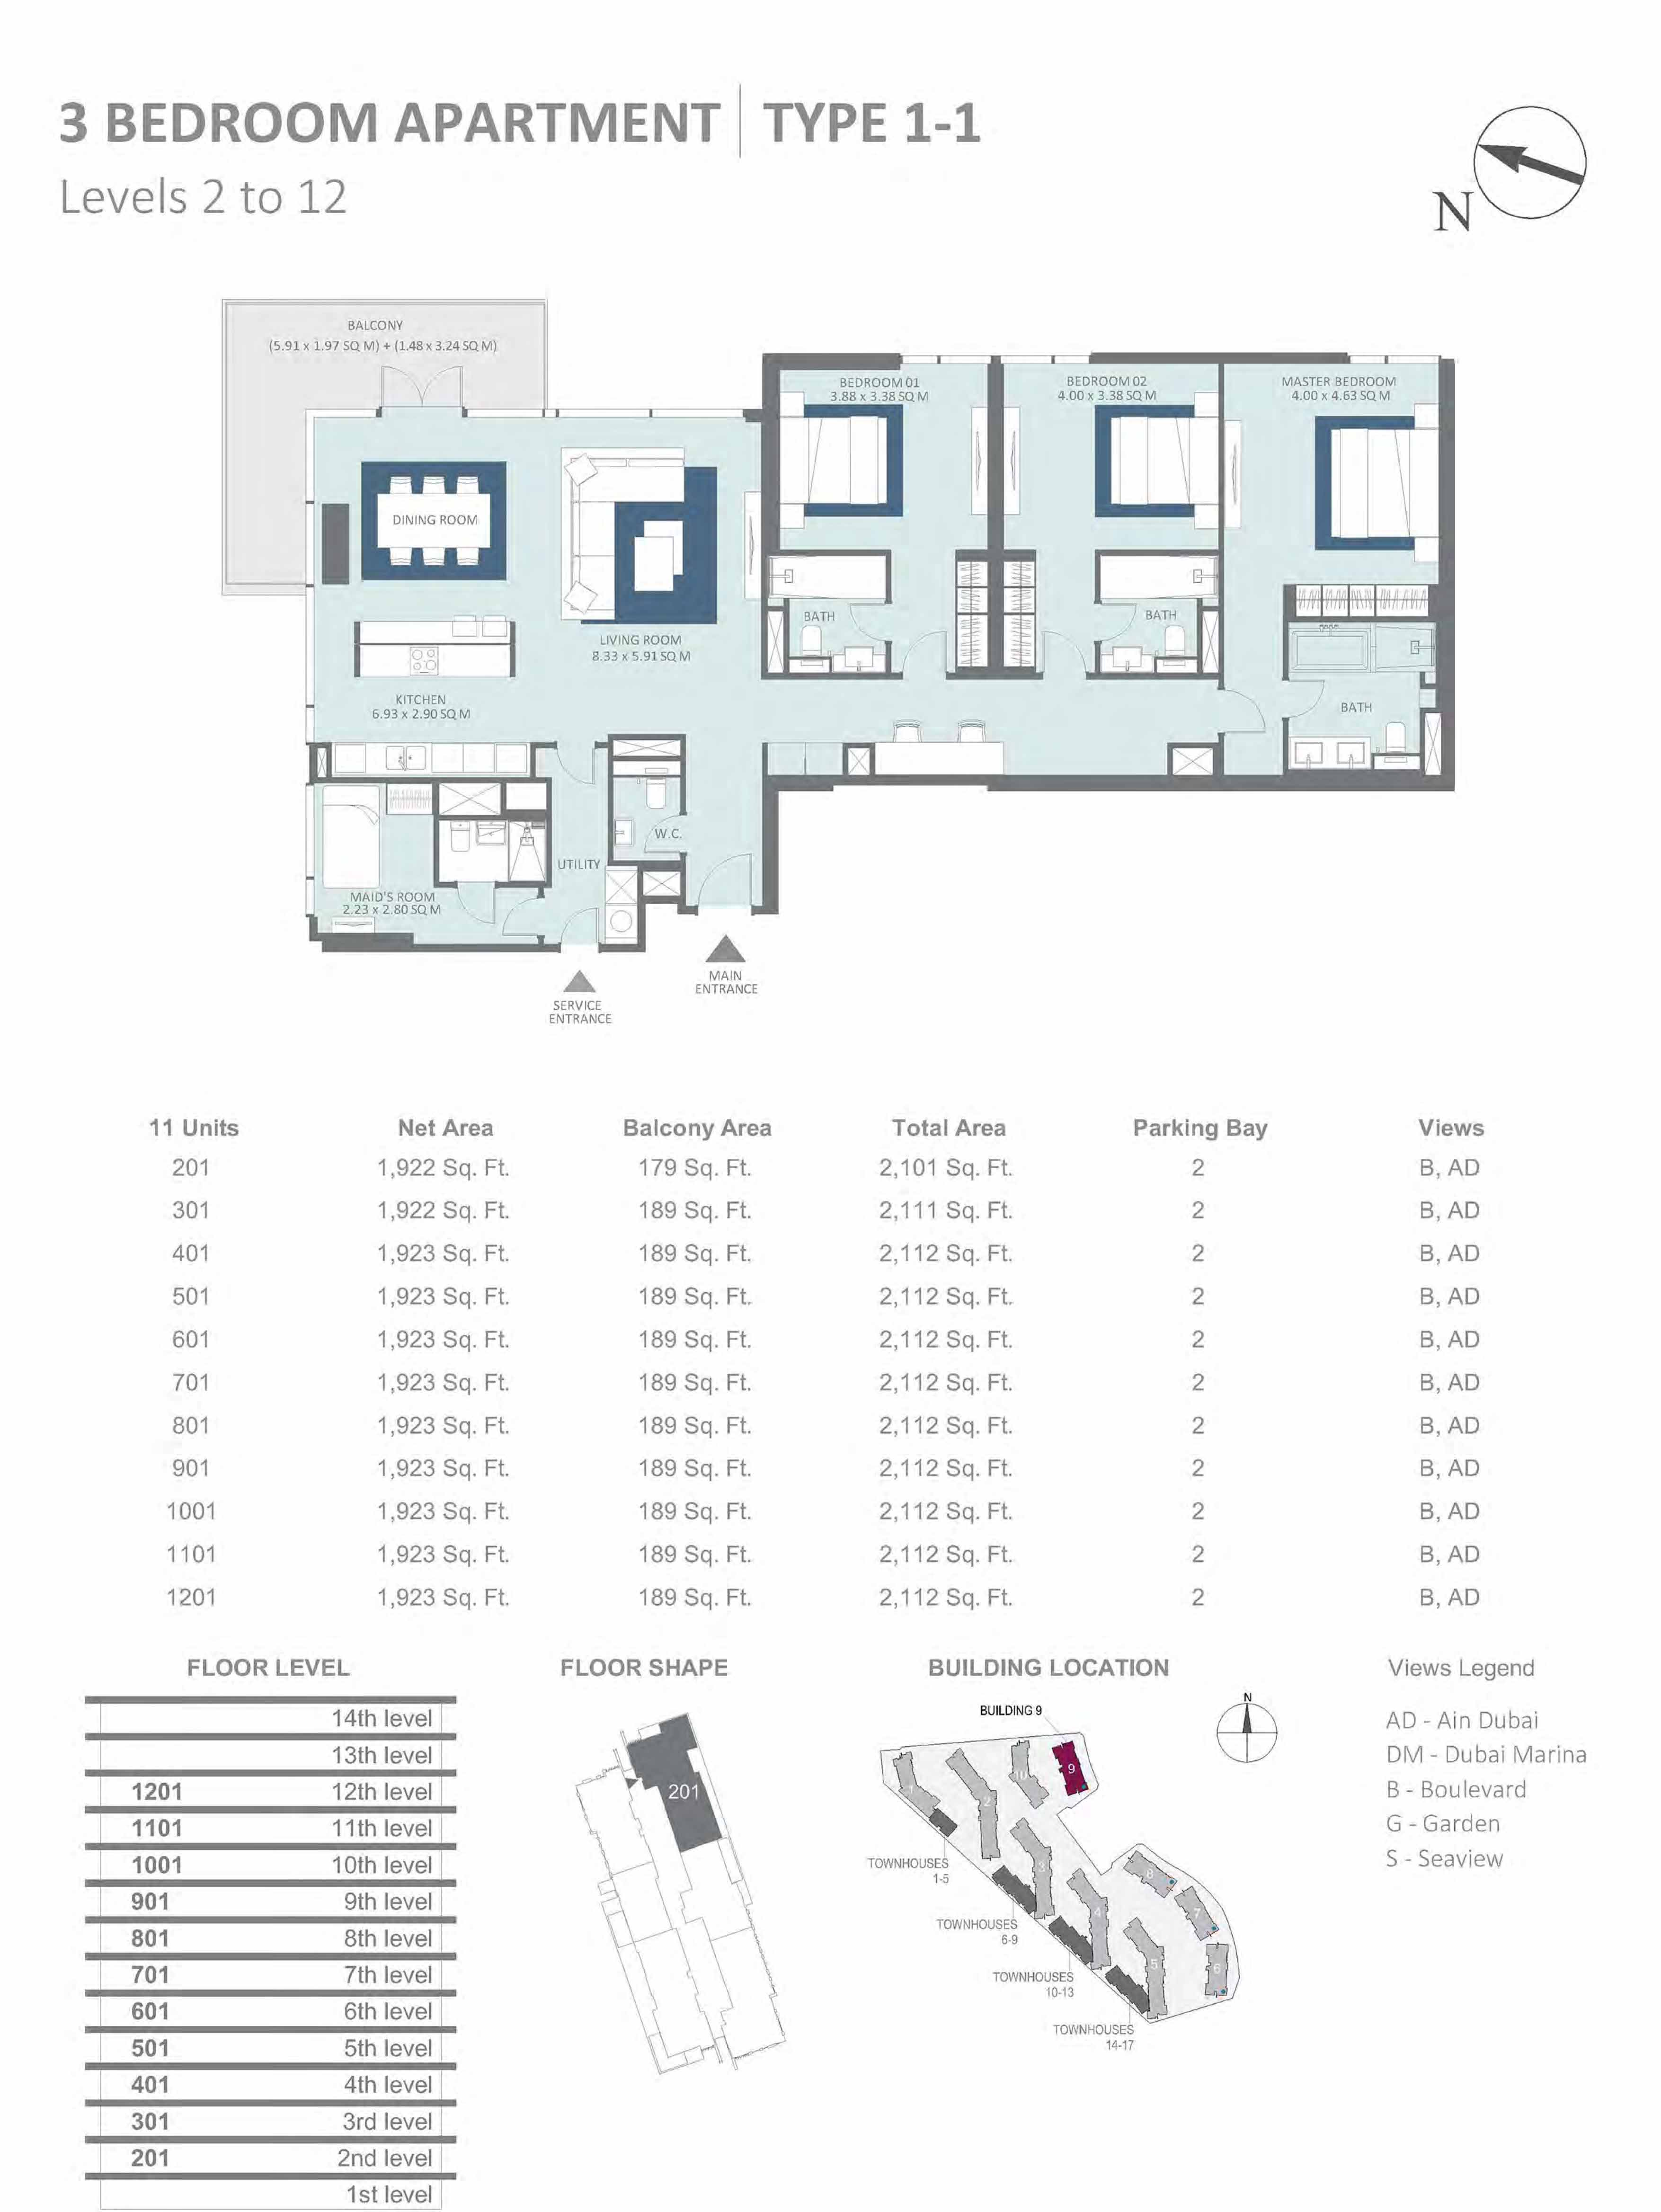 Building 9 - 3 Bedroom Type 1-1, Level 2-to-12 Size 2101 to 2112 sq.ft